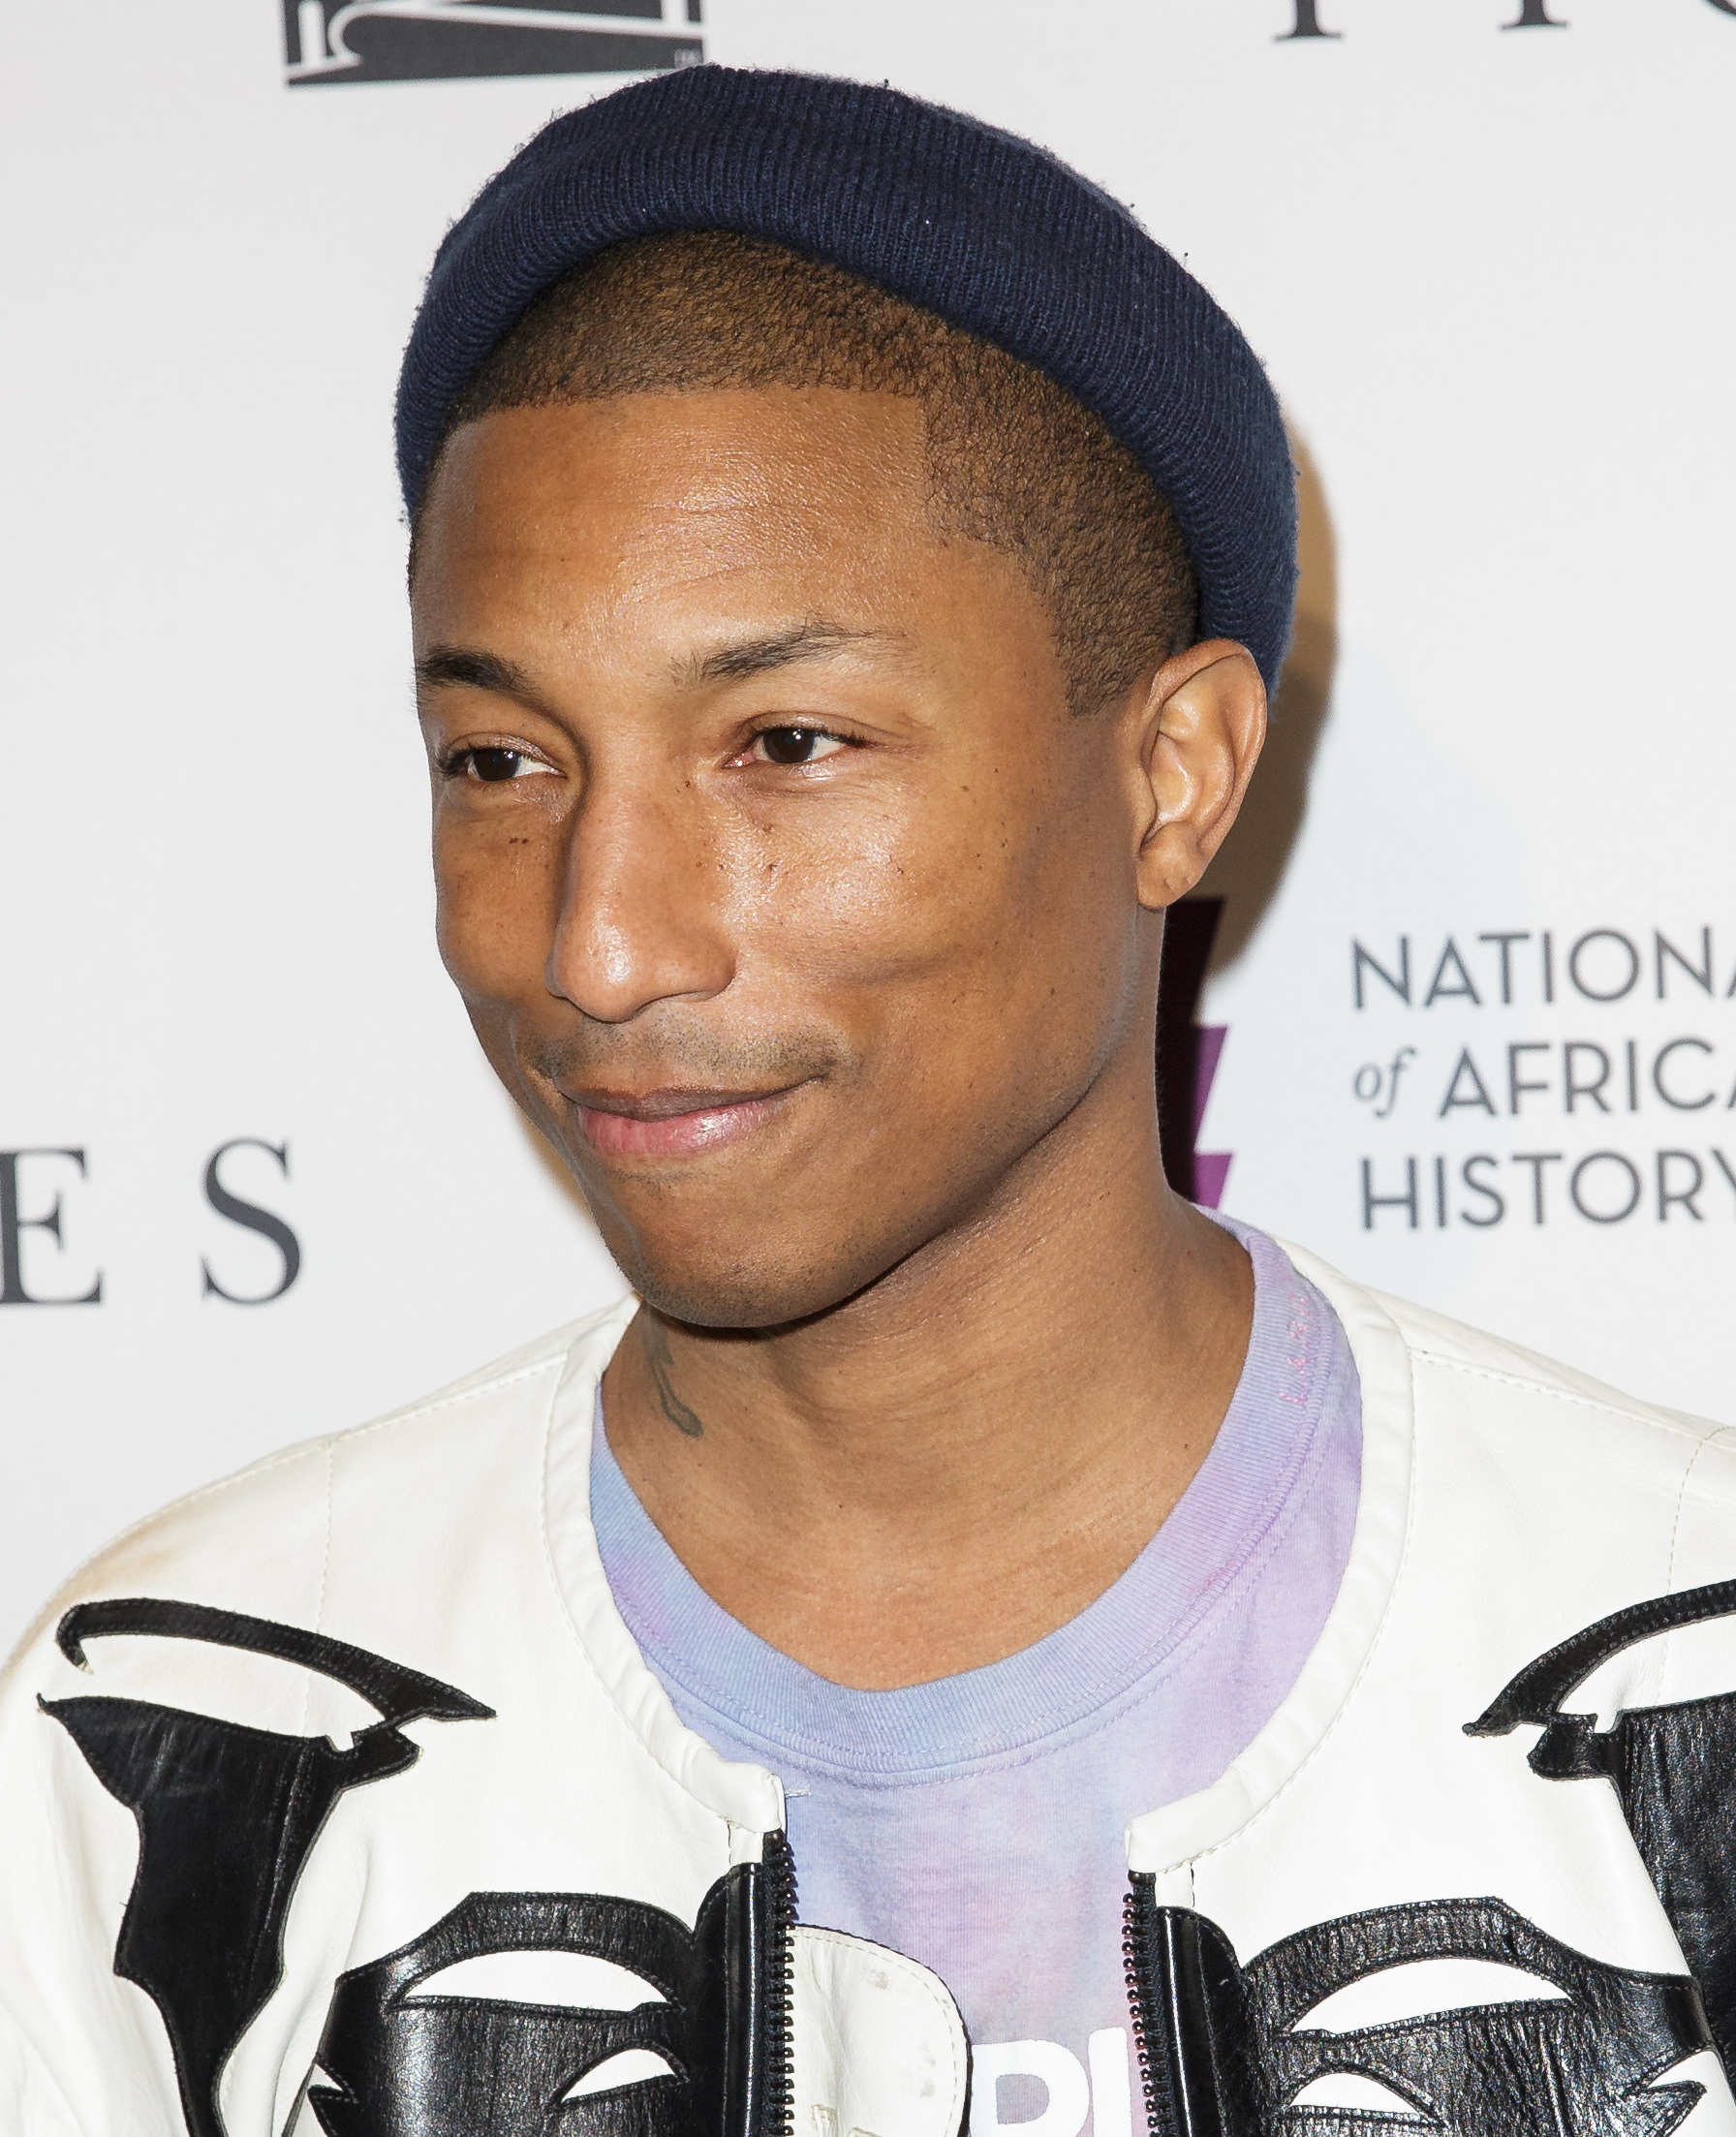 The 47-year old son of father Pharoah Williams and mother Carolyn Williams Pharrell Williams in 2020 photo. Pharrell Williams earned a million dollar salary - leaving the net worth at 80 million in 2020